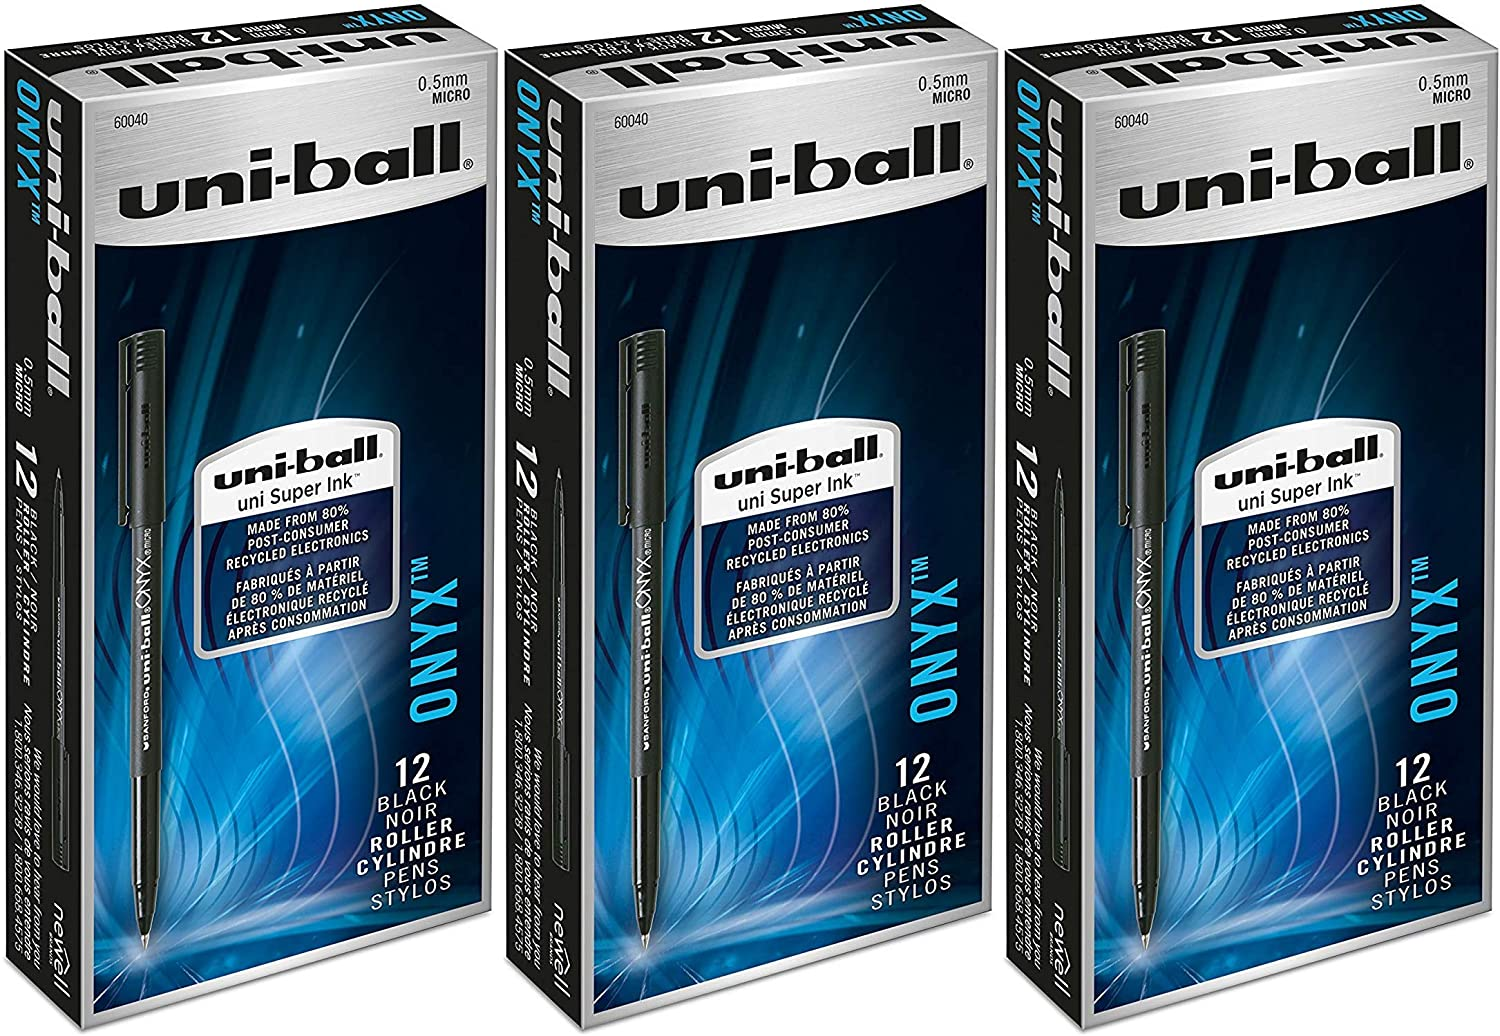 4 Pack of 12 Black uni-ball ONYX Rollerball Pen 0.5mm Micro Point